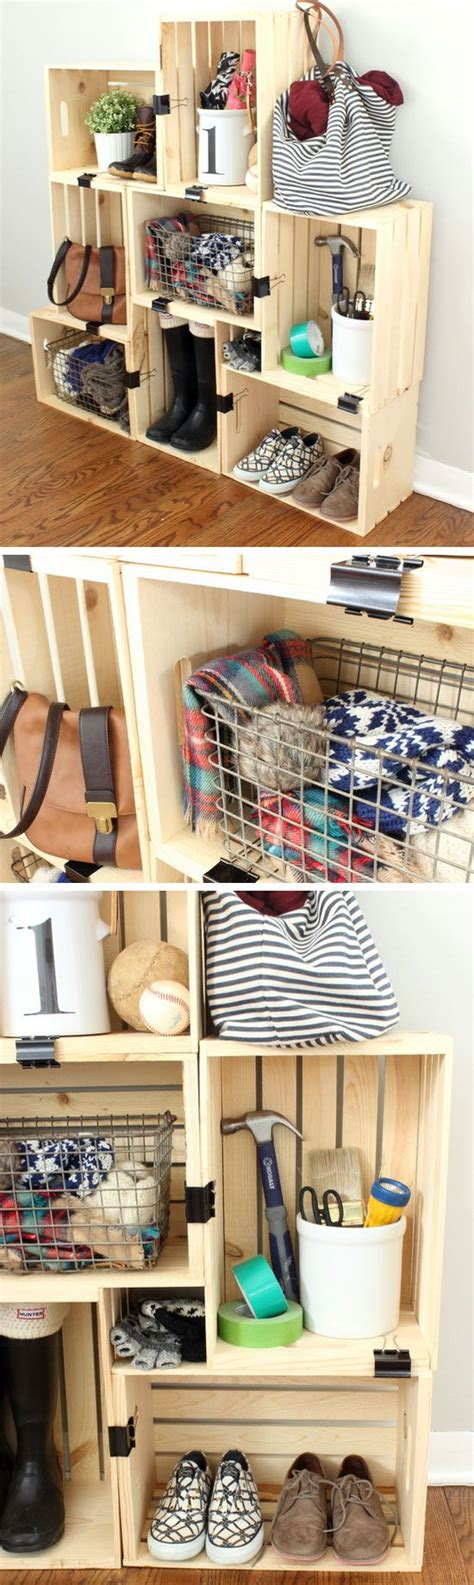 organize a studio apartment best 25 small apartment organization ideas on pinterest